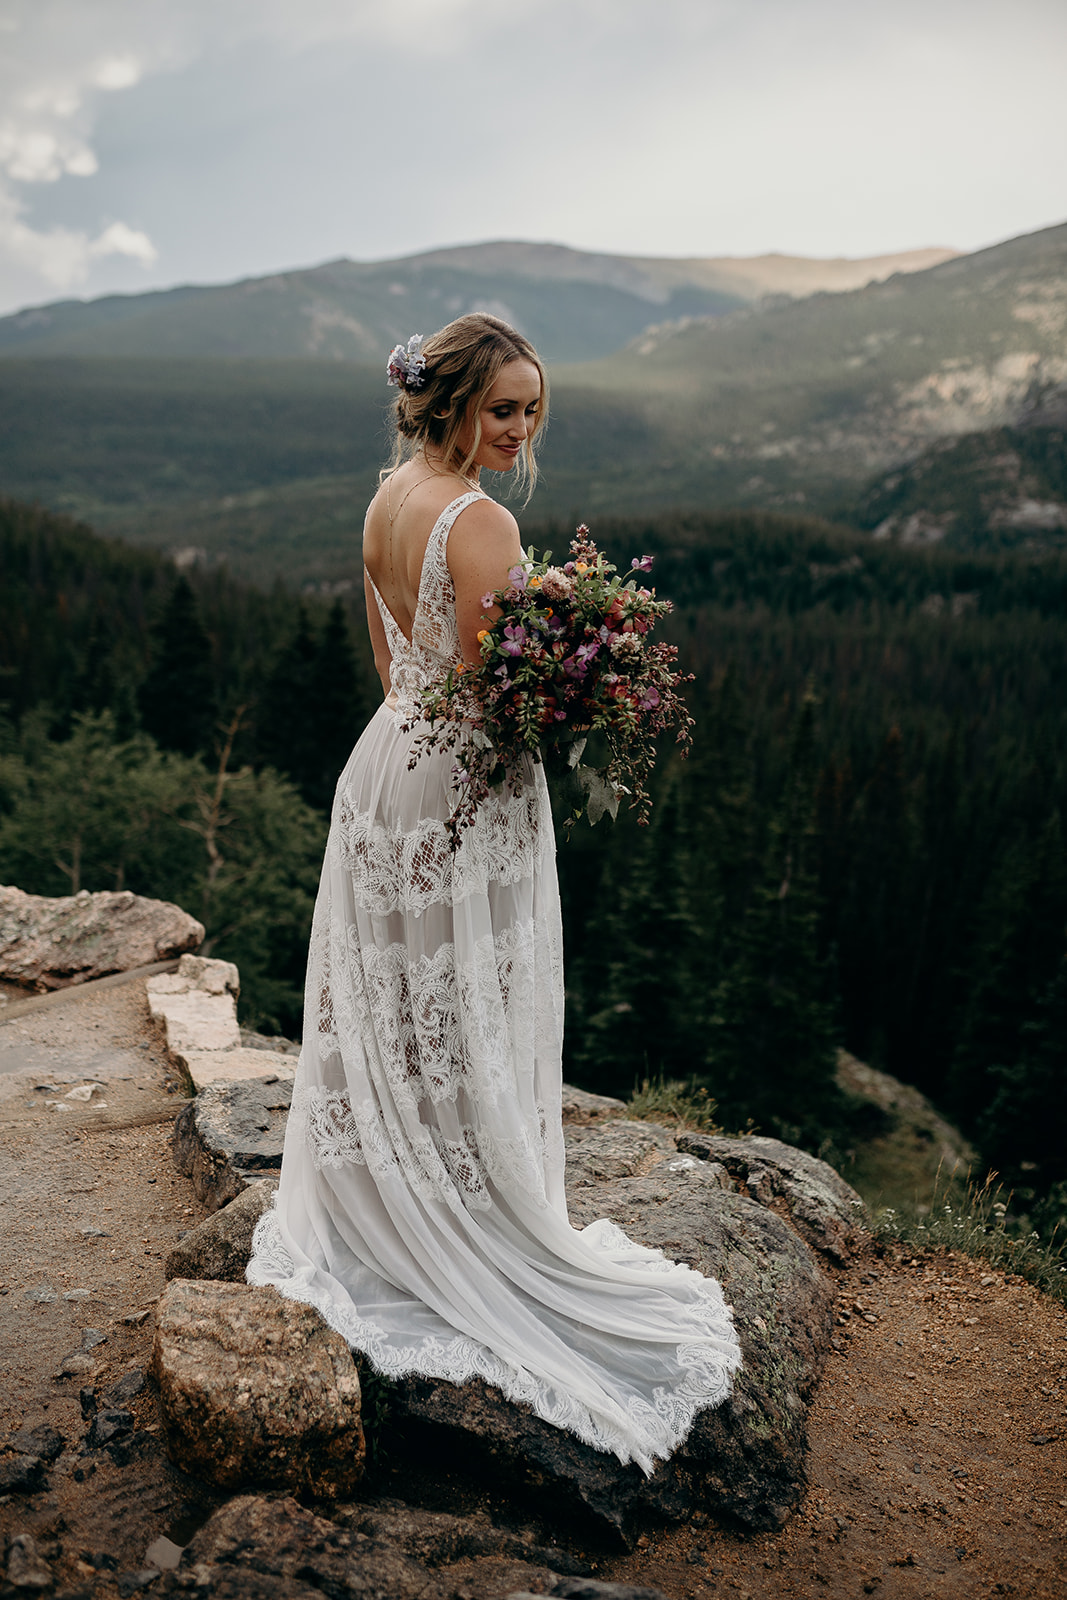 Epoch Co+  //  Heidi Elyse Photography  //  Lale Florals  //  Wedlocks Bridal Hair and Makeup  //  Emma and Grace Bridal  // Willow By Watters